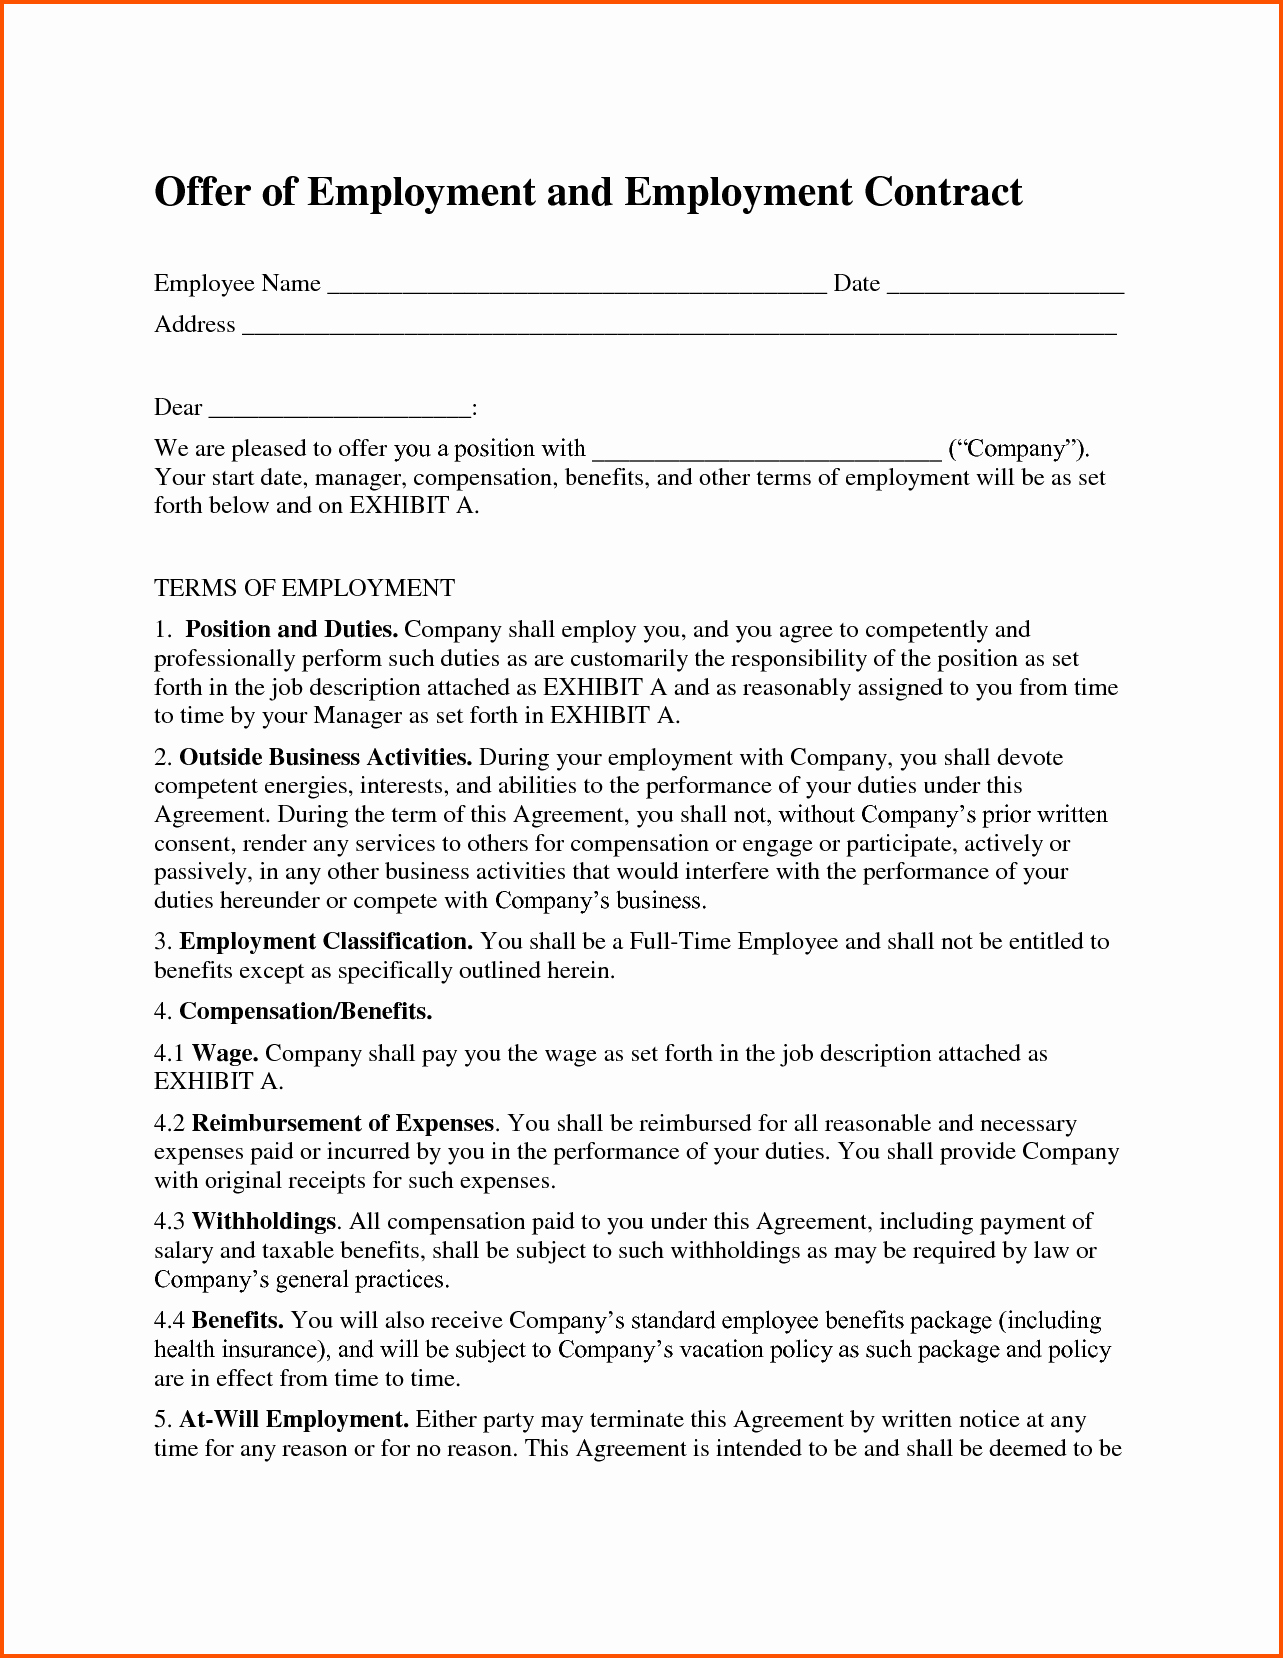 Employment Contract Template Word Fresh Free Employment Contract Template Word